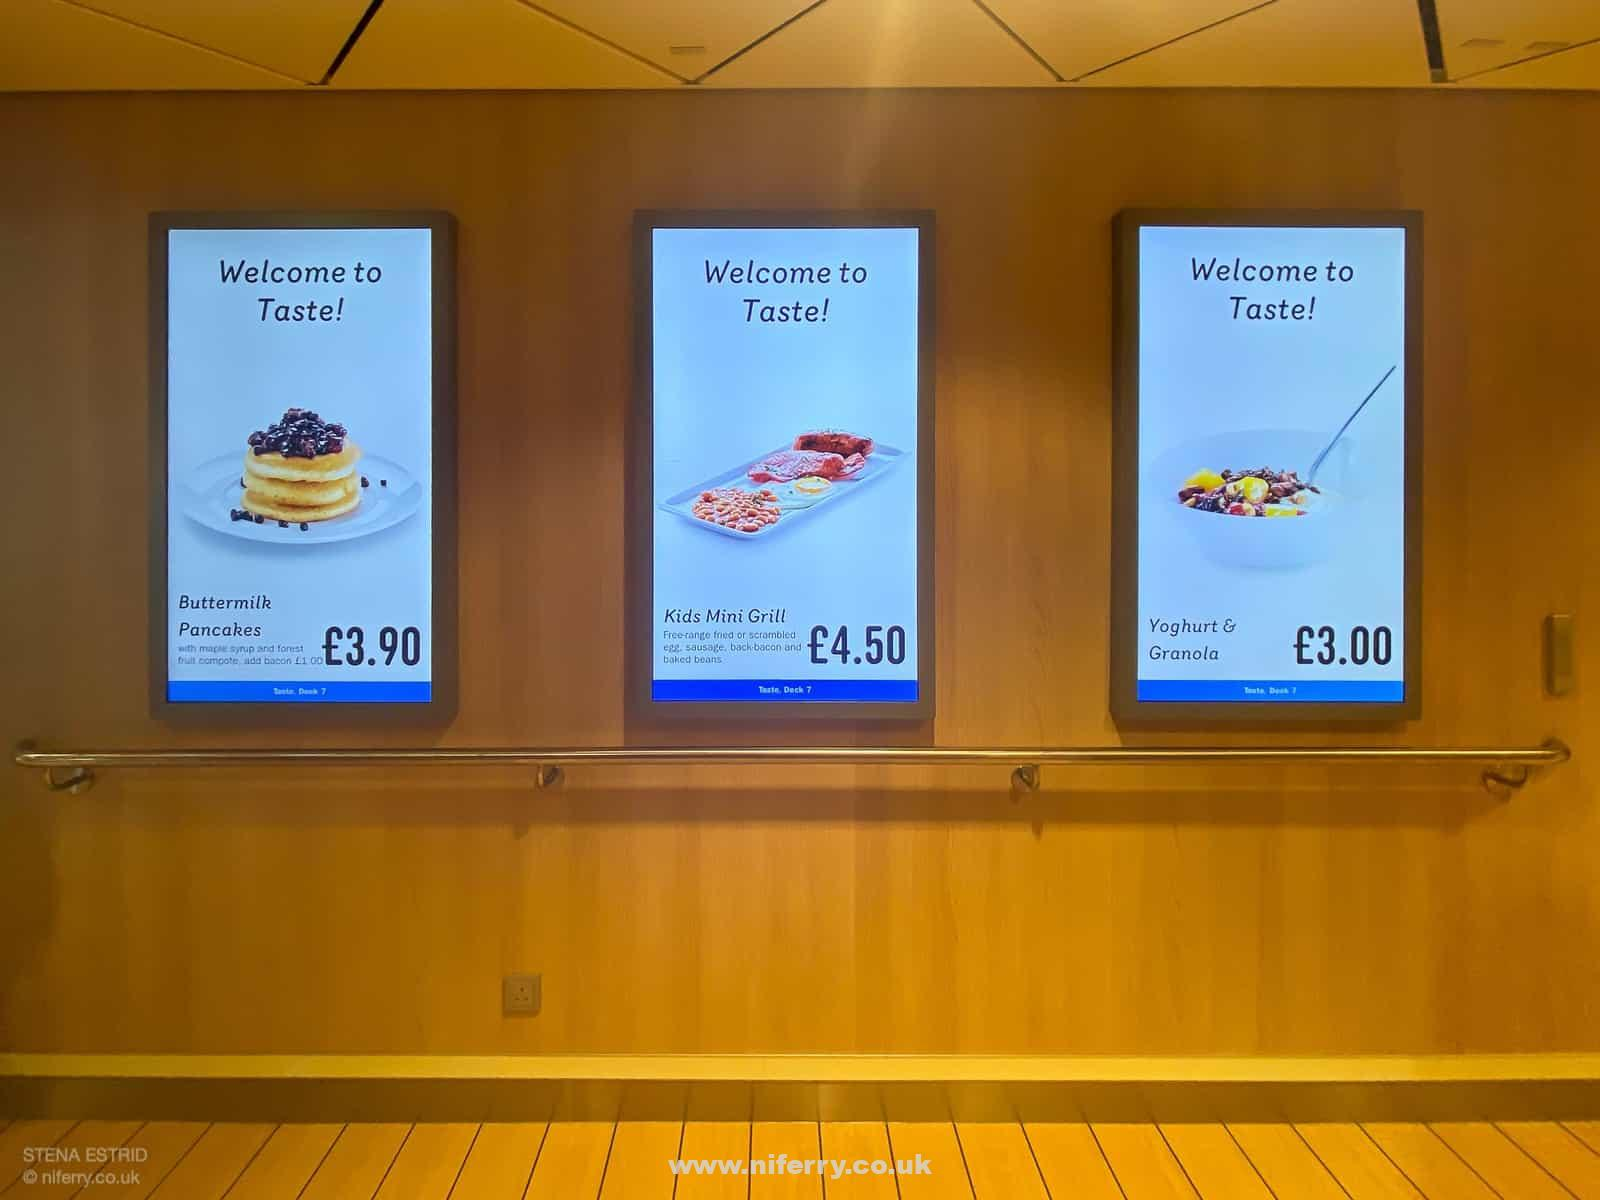 Interactive digital menu boards outside the 'Taste' restaurant, Stena Estrid. © NIferry.co.uk